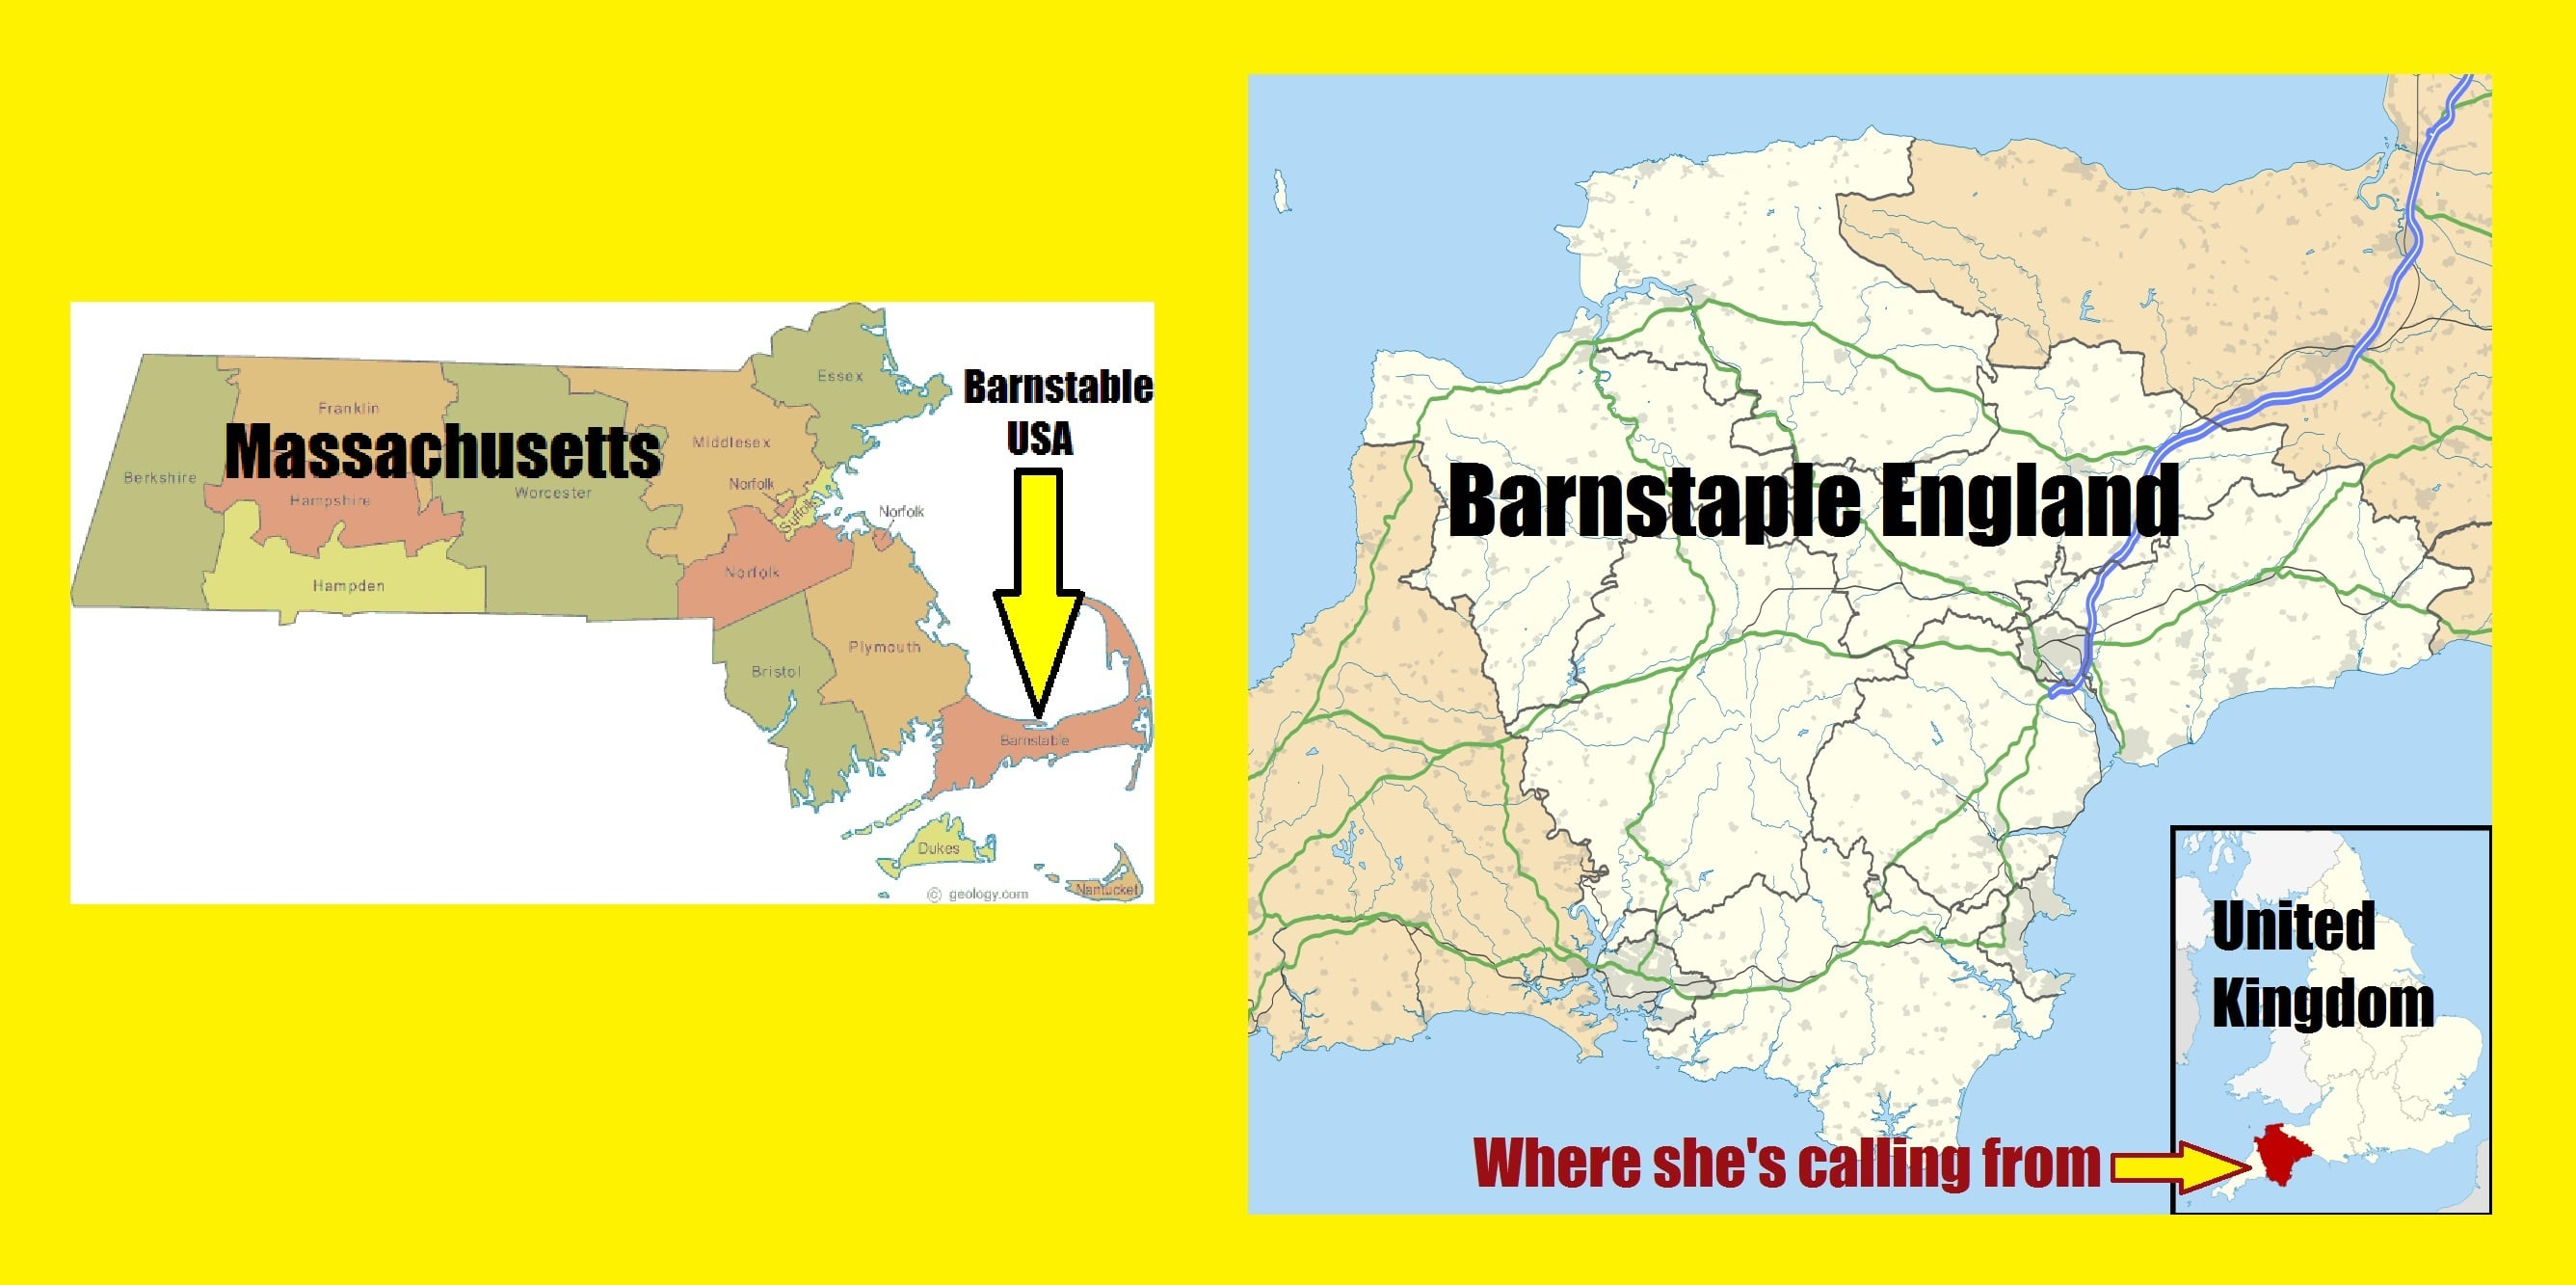 AUDIO: Woman calls Barnstable Police in Massachusetts to report car accident in Barnstaple England…